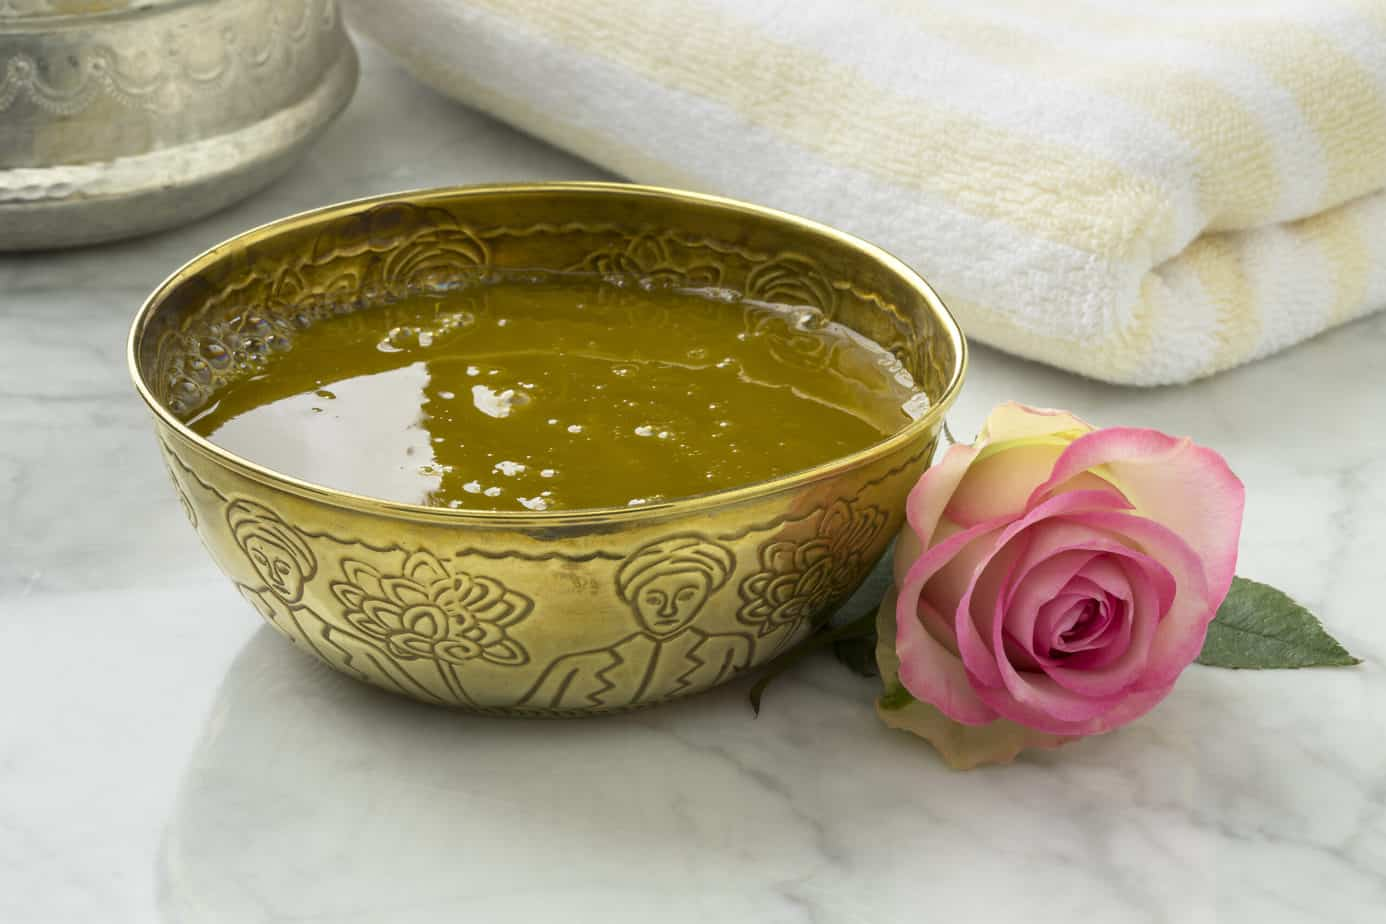 Olive oil with rose extract for skin care.